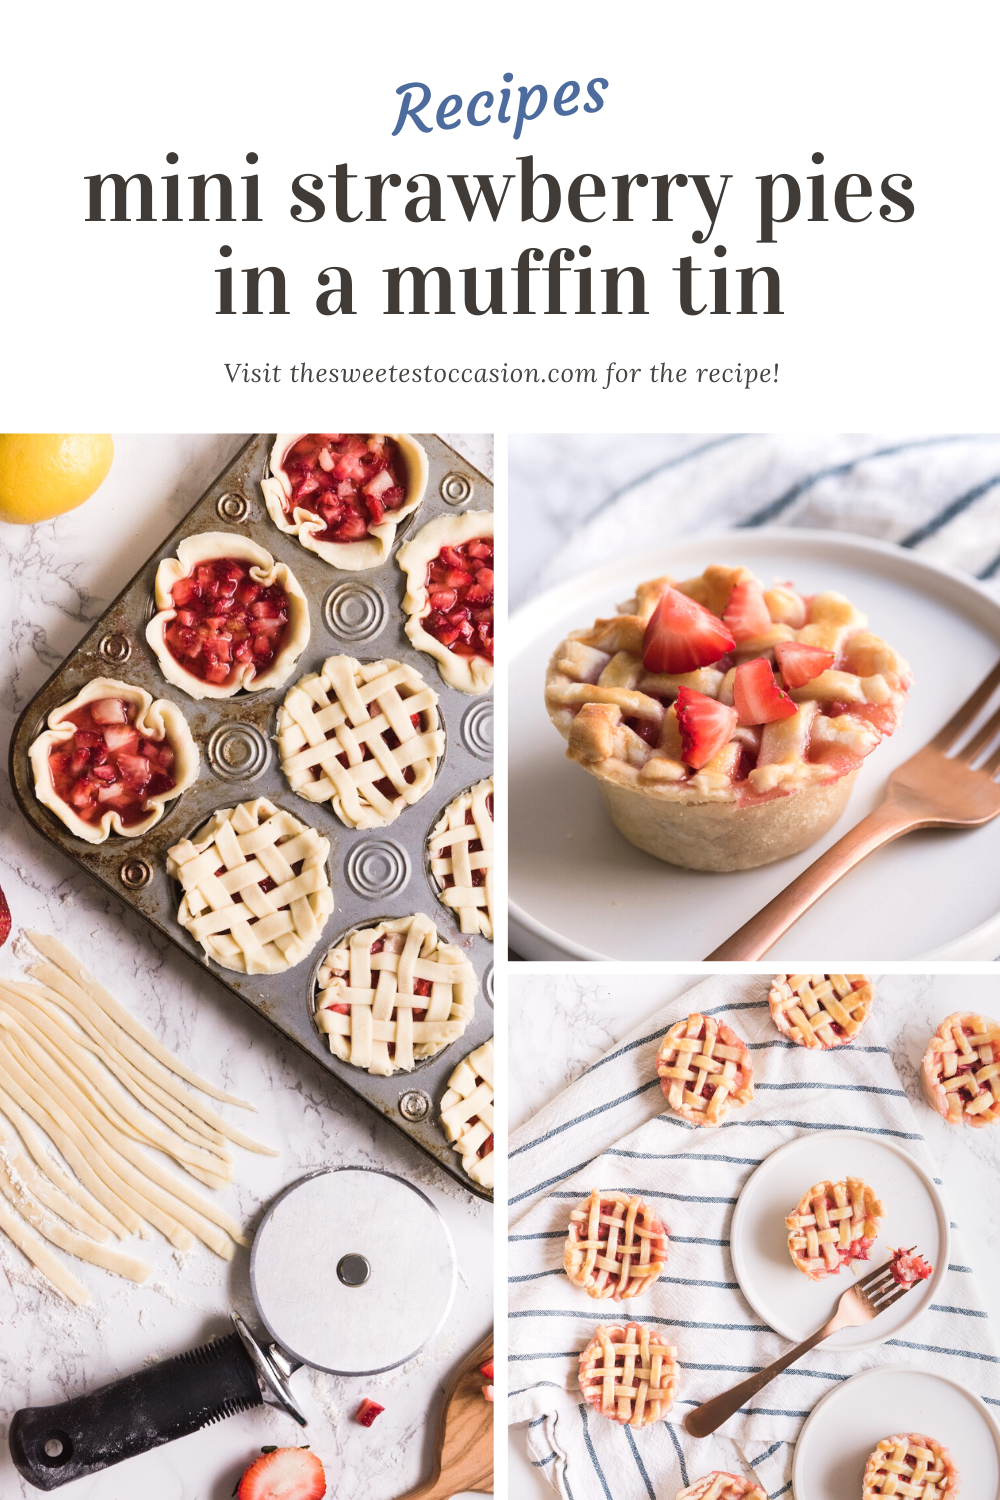 Mini Strawberry Pies in a Muffin Tin